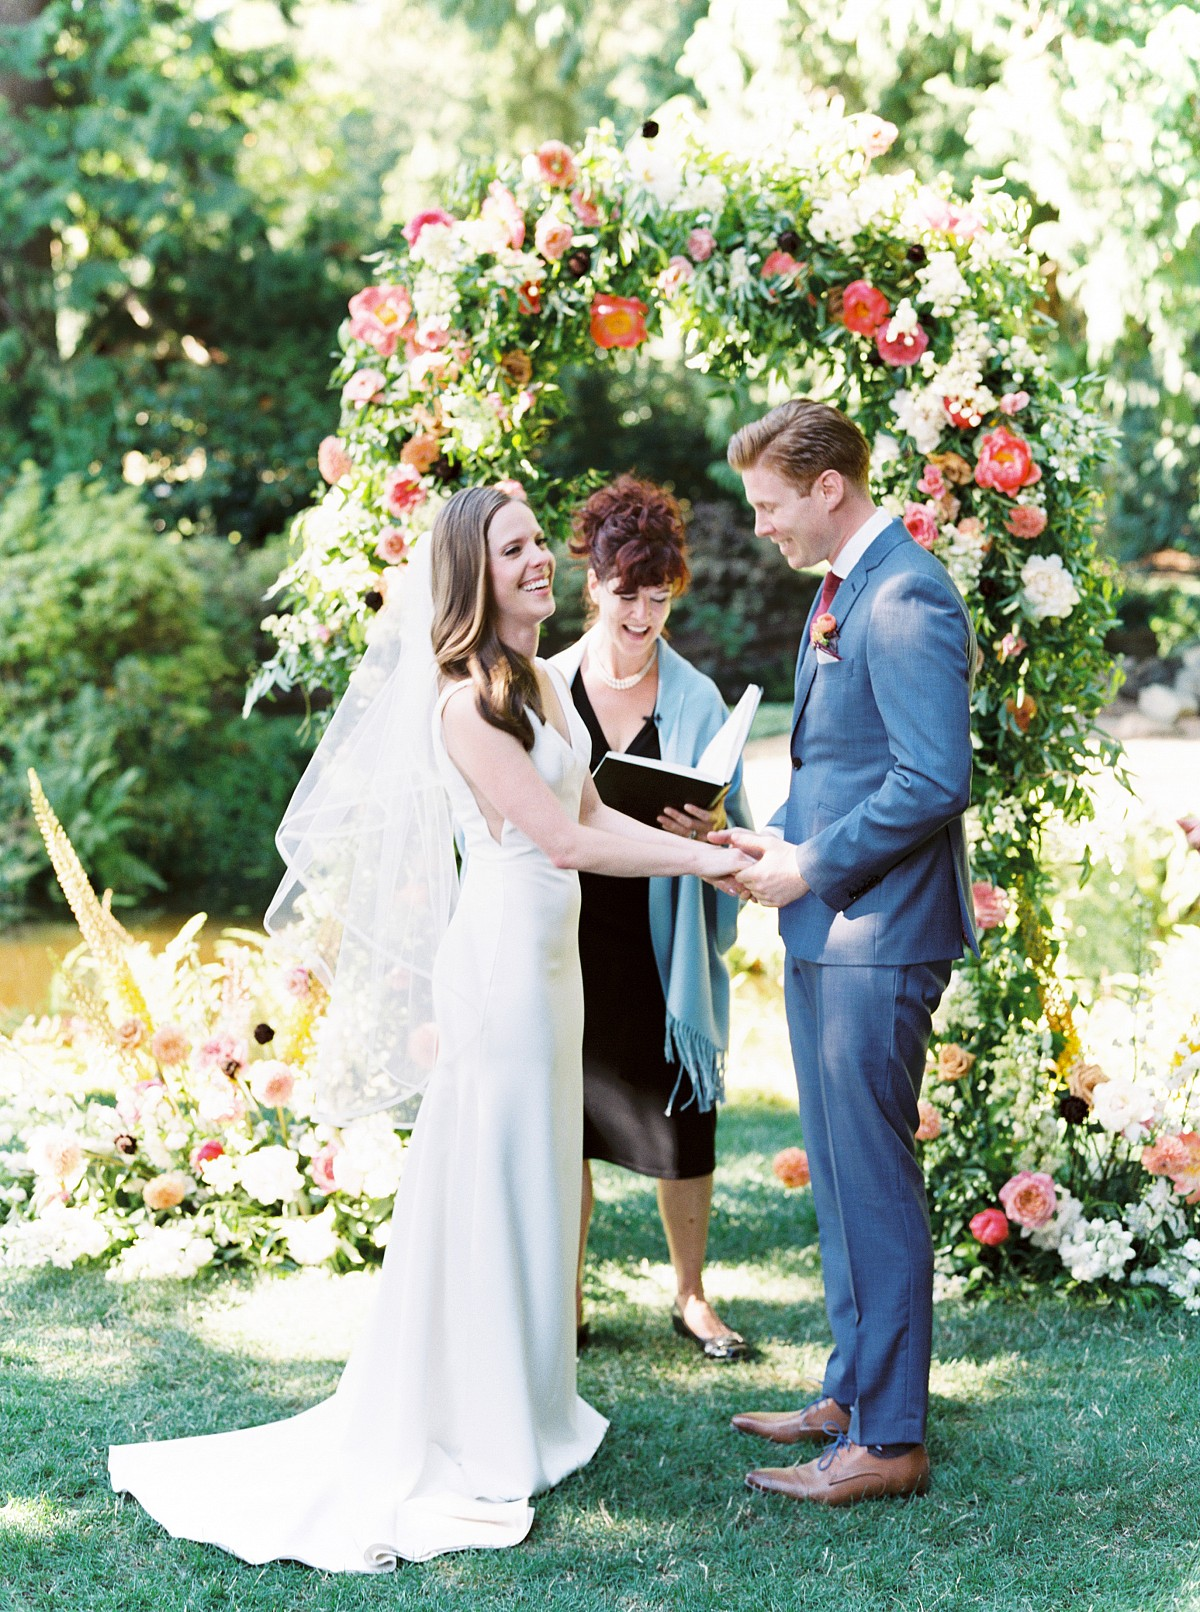 Winery Wedding With The Most Stunning Floral Arch You've Ever Seen!